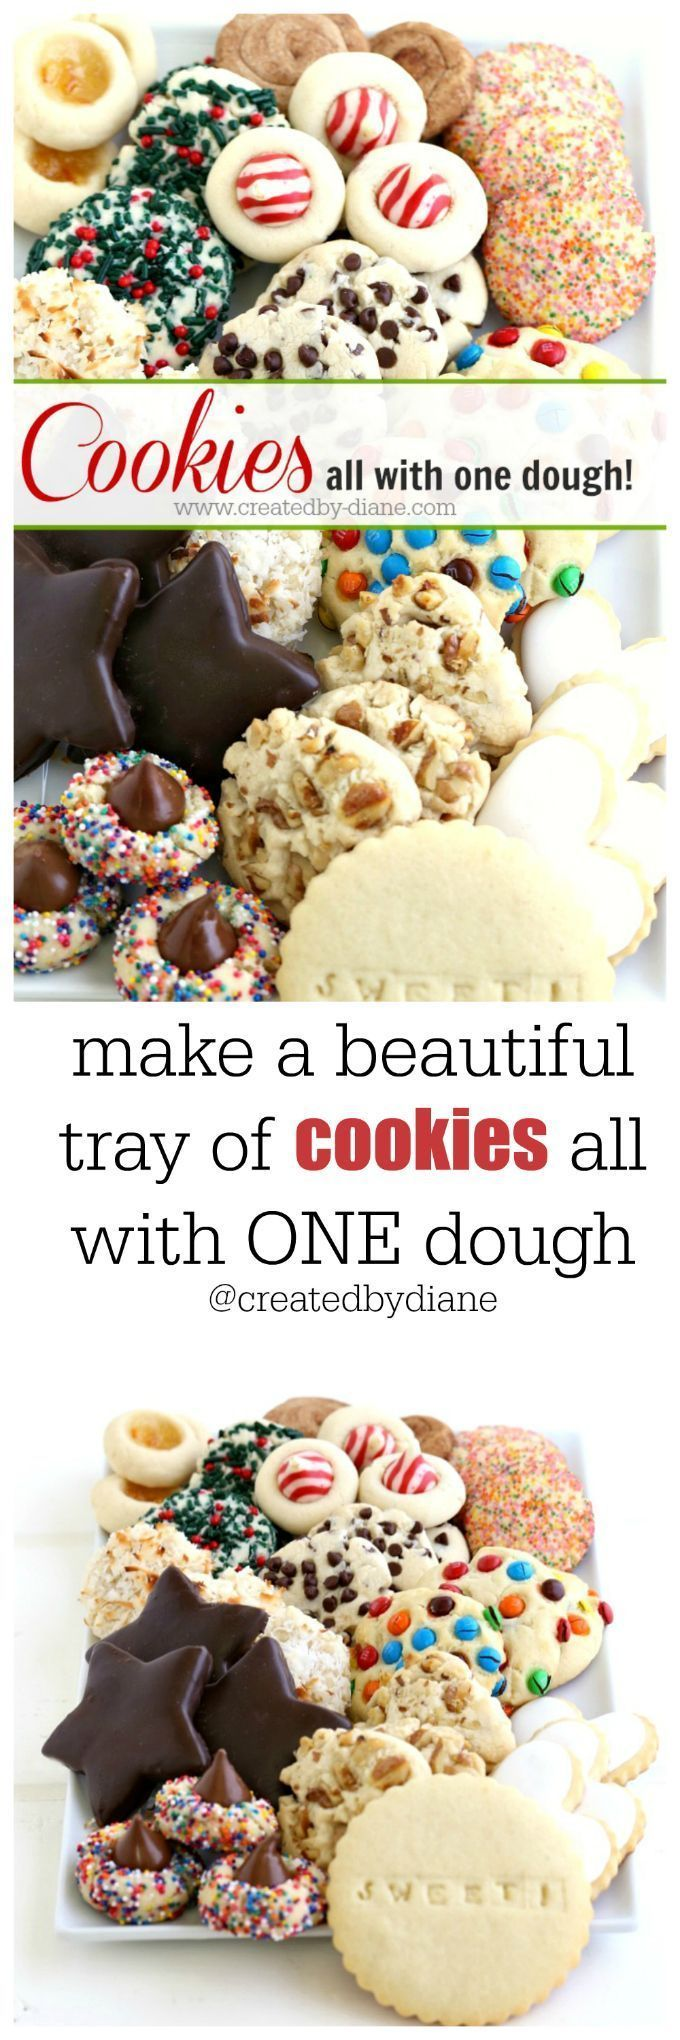 one dough cookie tray from /createdbydiane/ #christmascookies